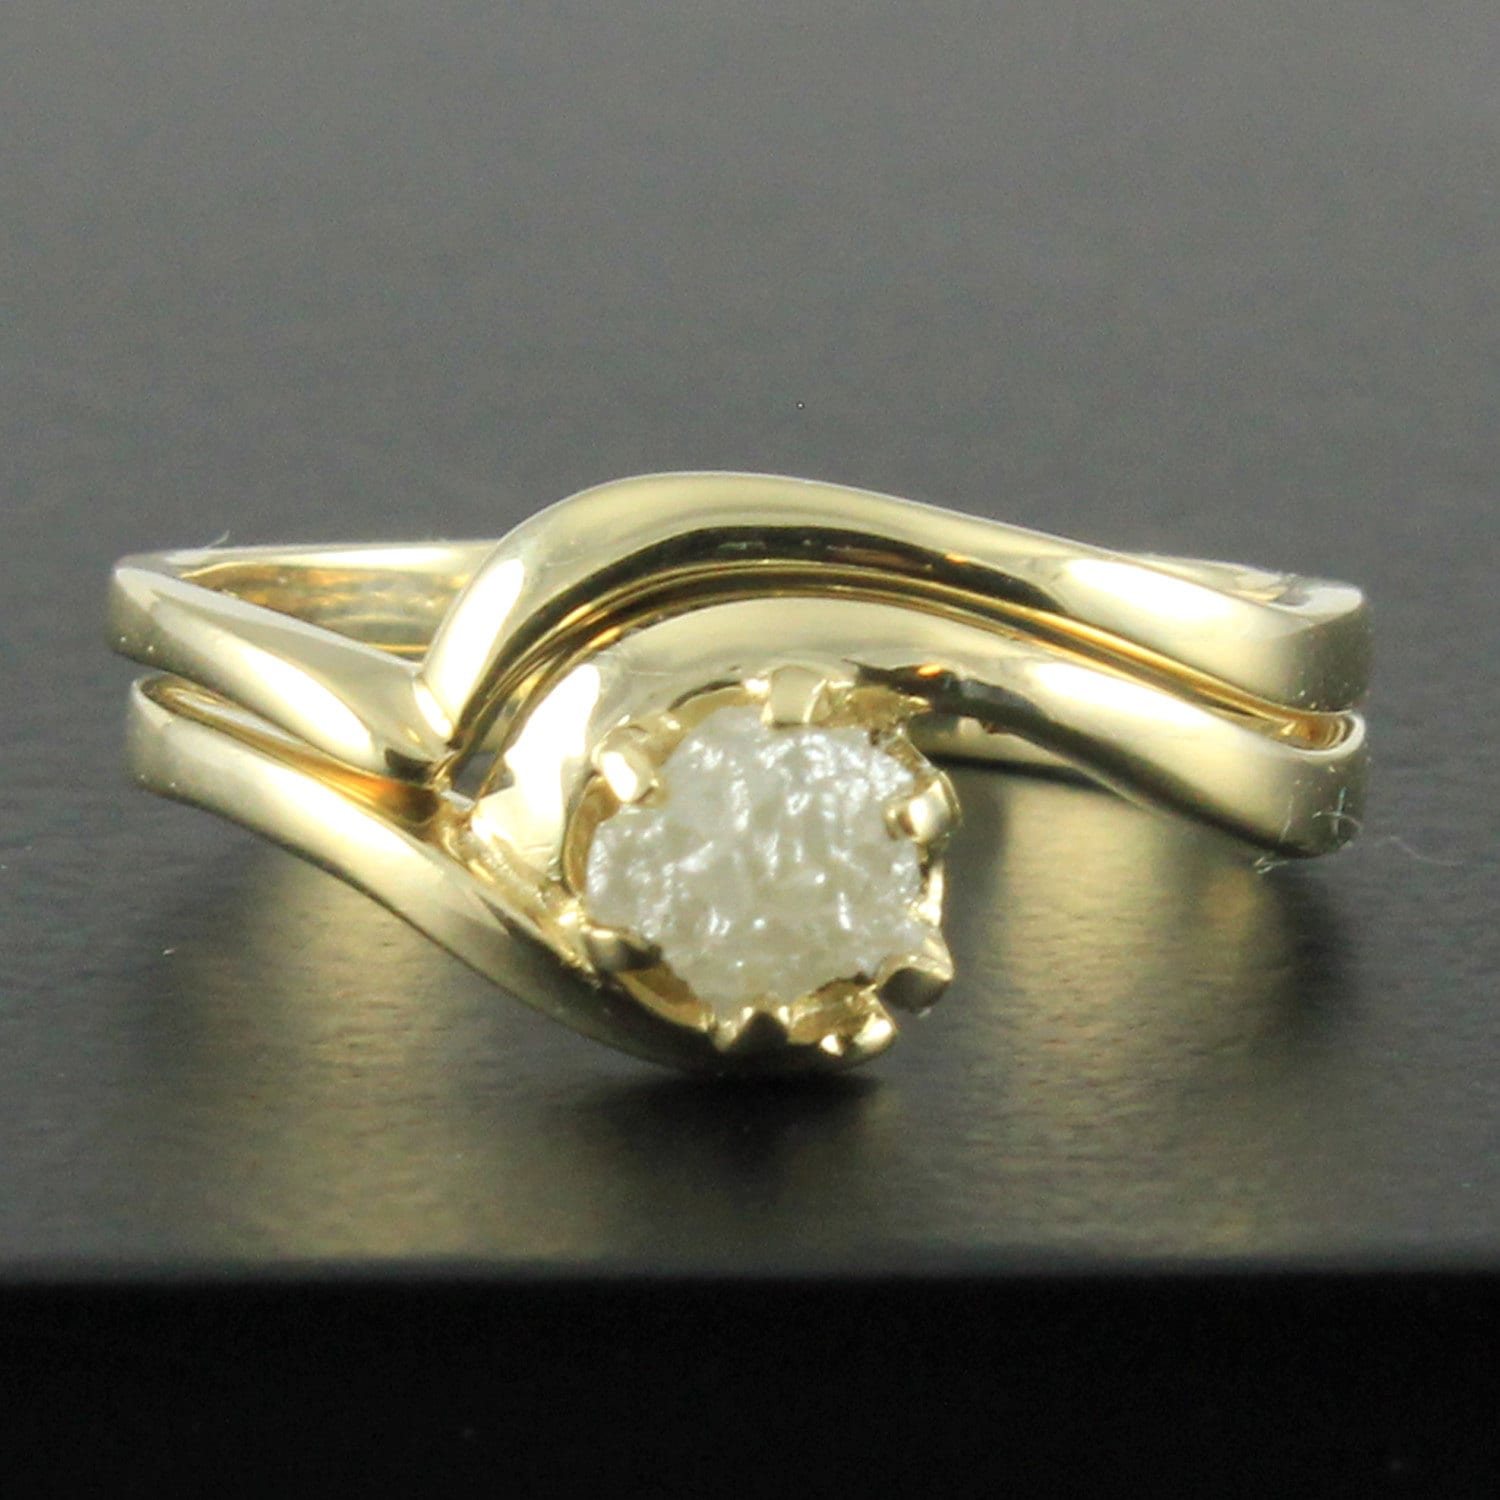 rings rough diamond avens with neal ring asymmetrical bario raw